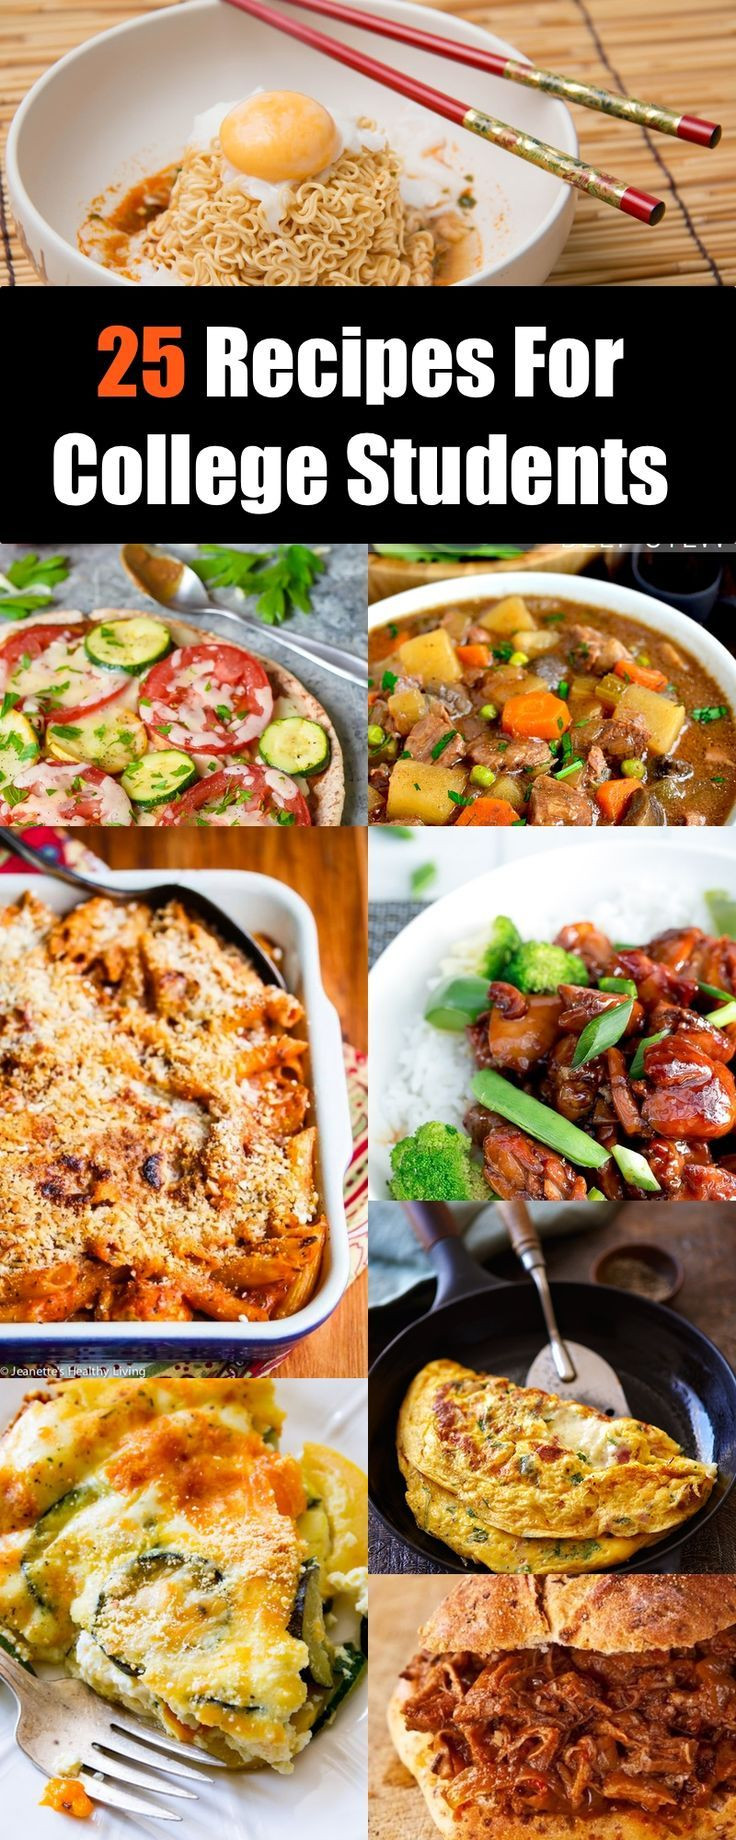 Easy Healthy Dinners For College Students  100 College student recipes on Pinterest